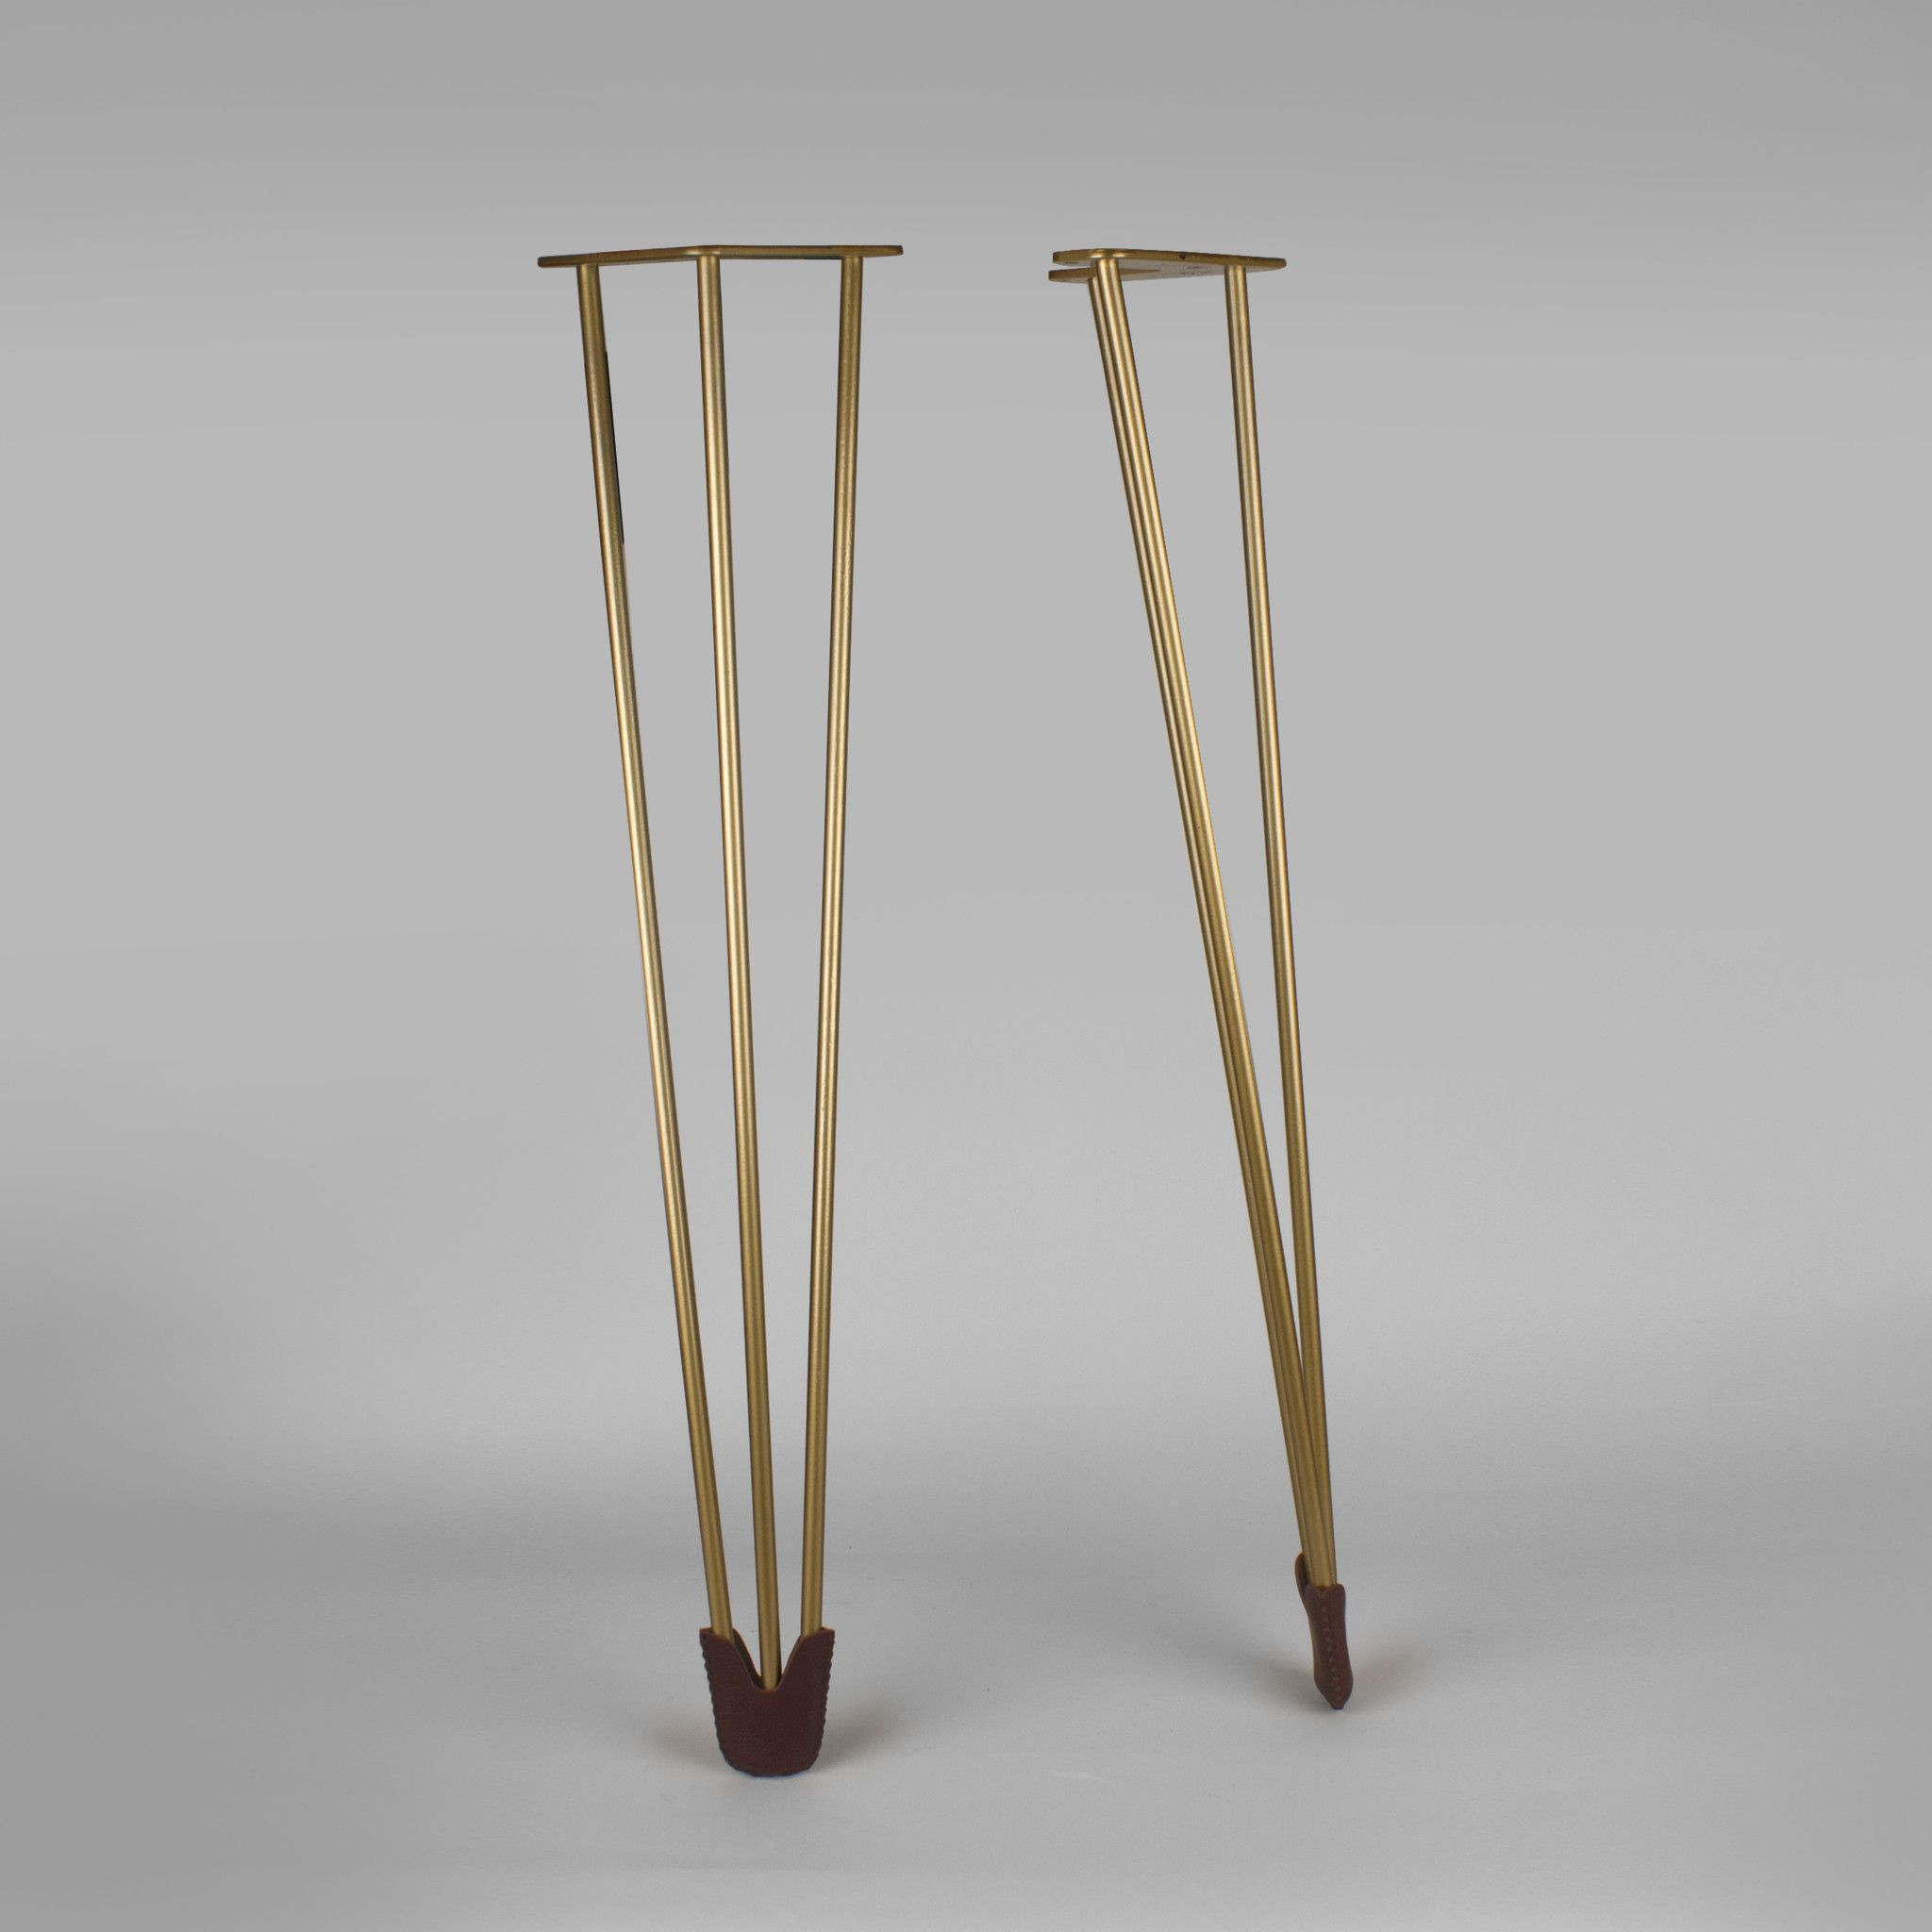 Harald Table Leg Gold With Leather Sock You Find All Our Table Legs At Prettypegs Com Prettypegs Tablelegs Diy Home Table Legs Furniture Legs Table Tops [ 2048 x 2048 Pixel ]